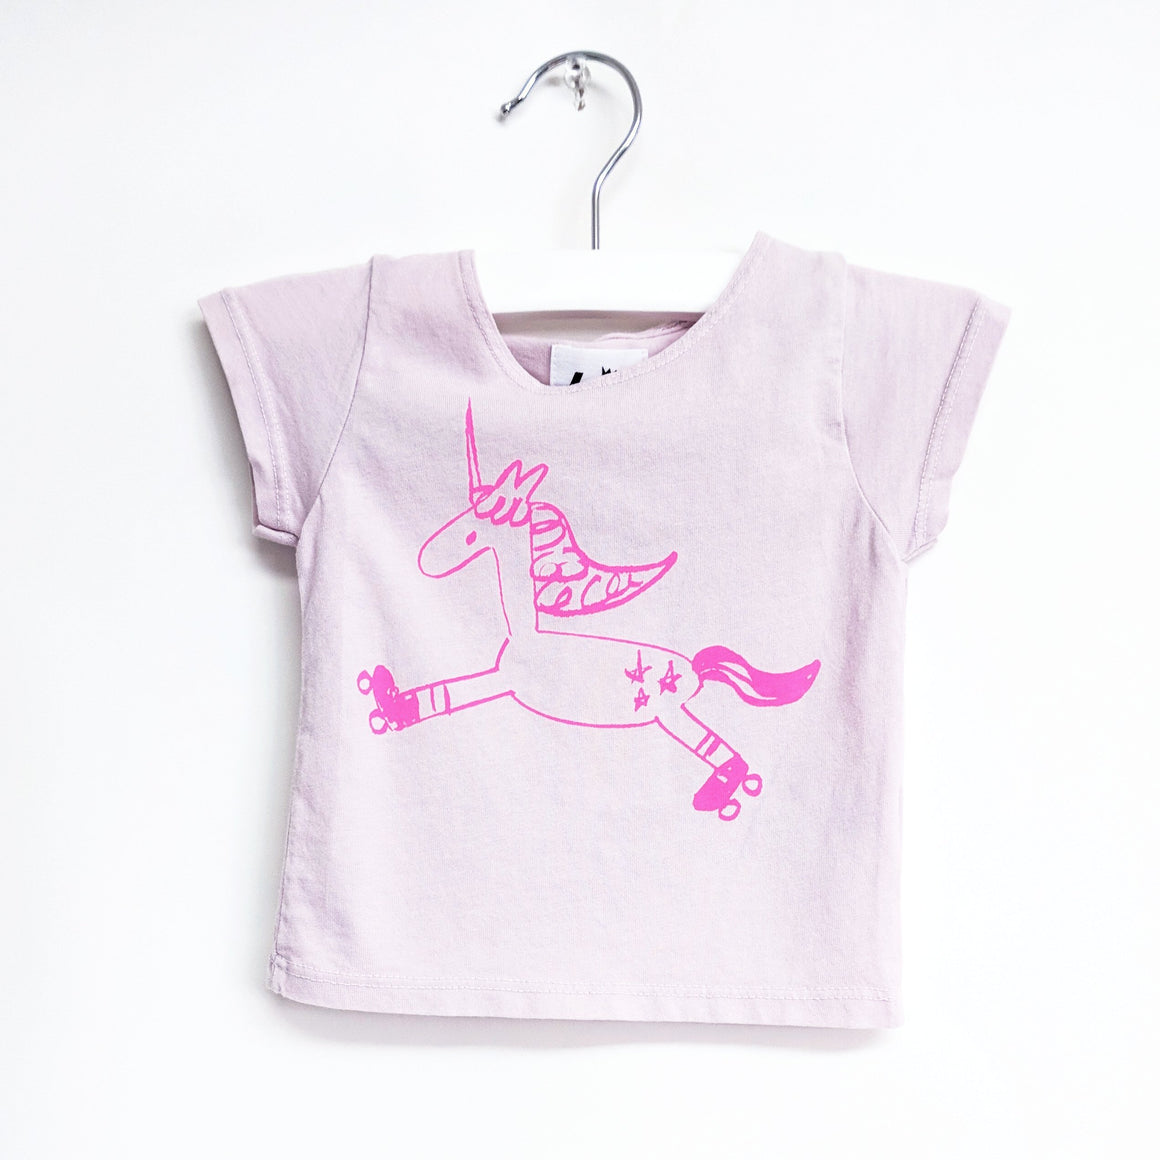 Unicorn Graphic T-shirt, Light Pink